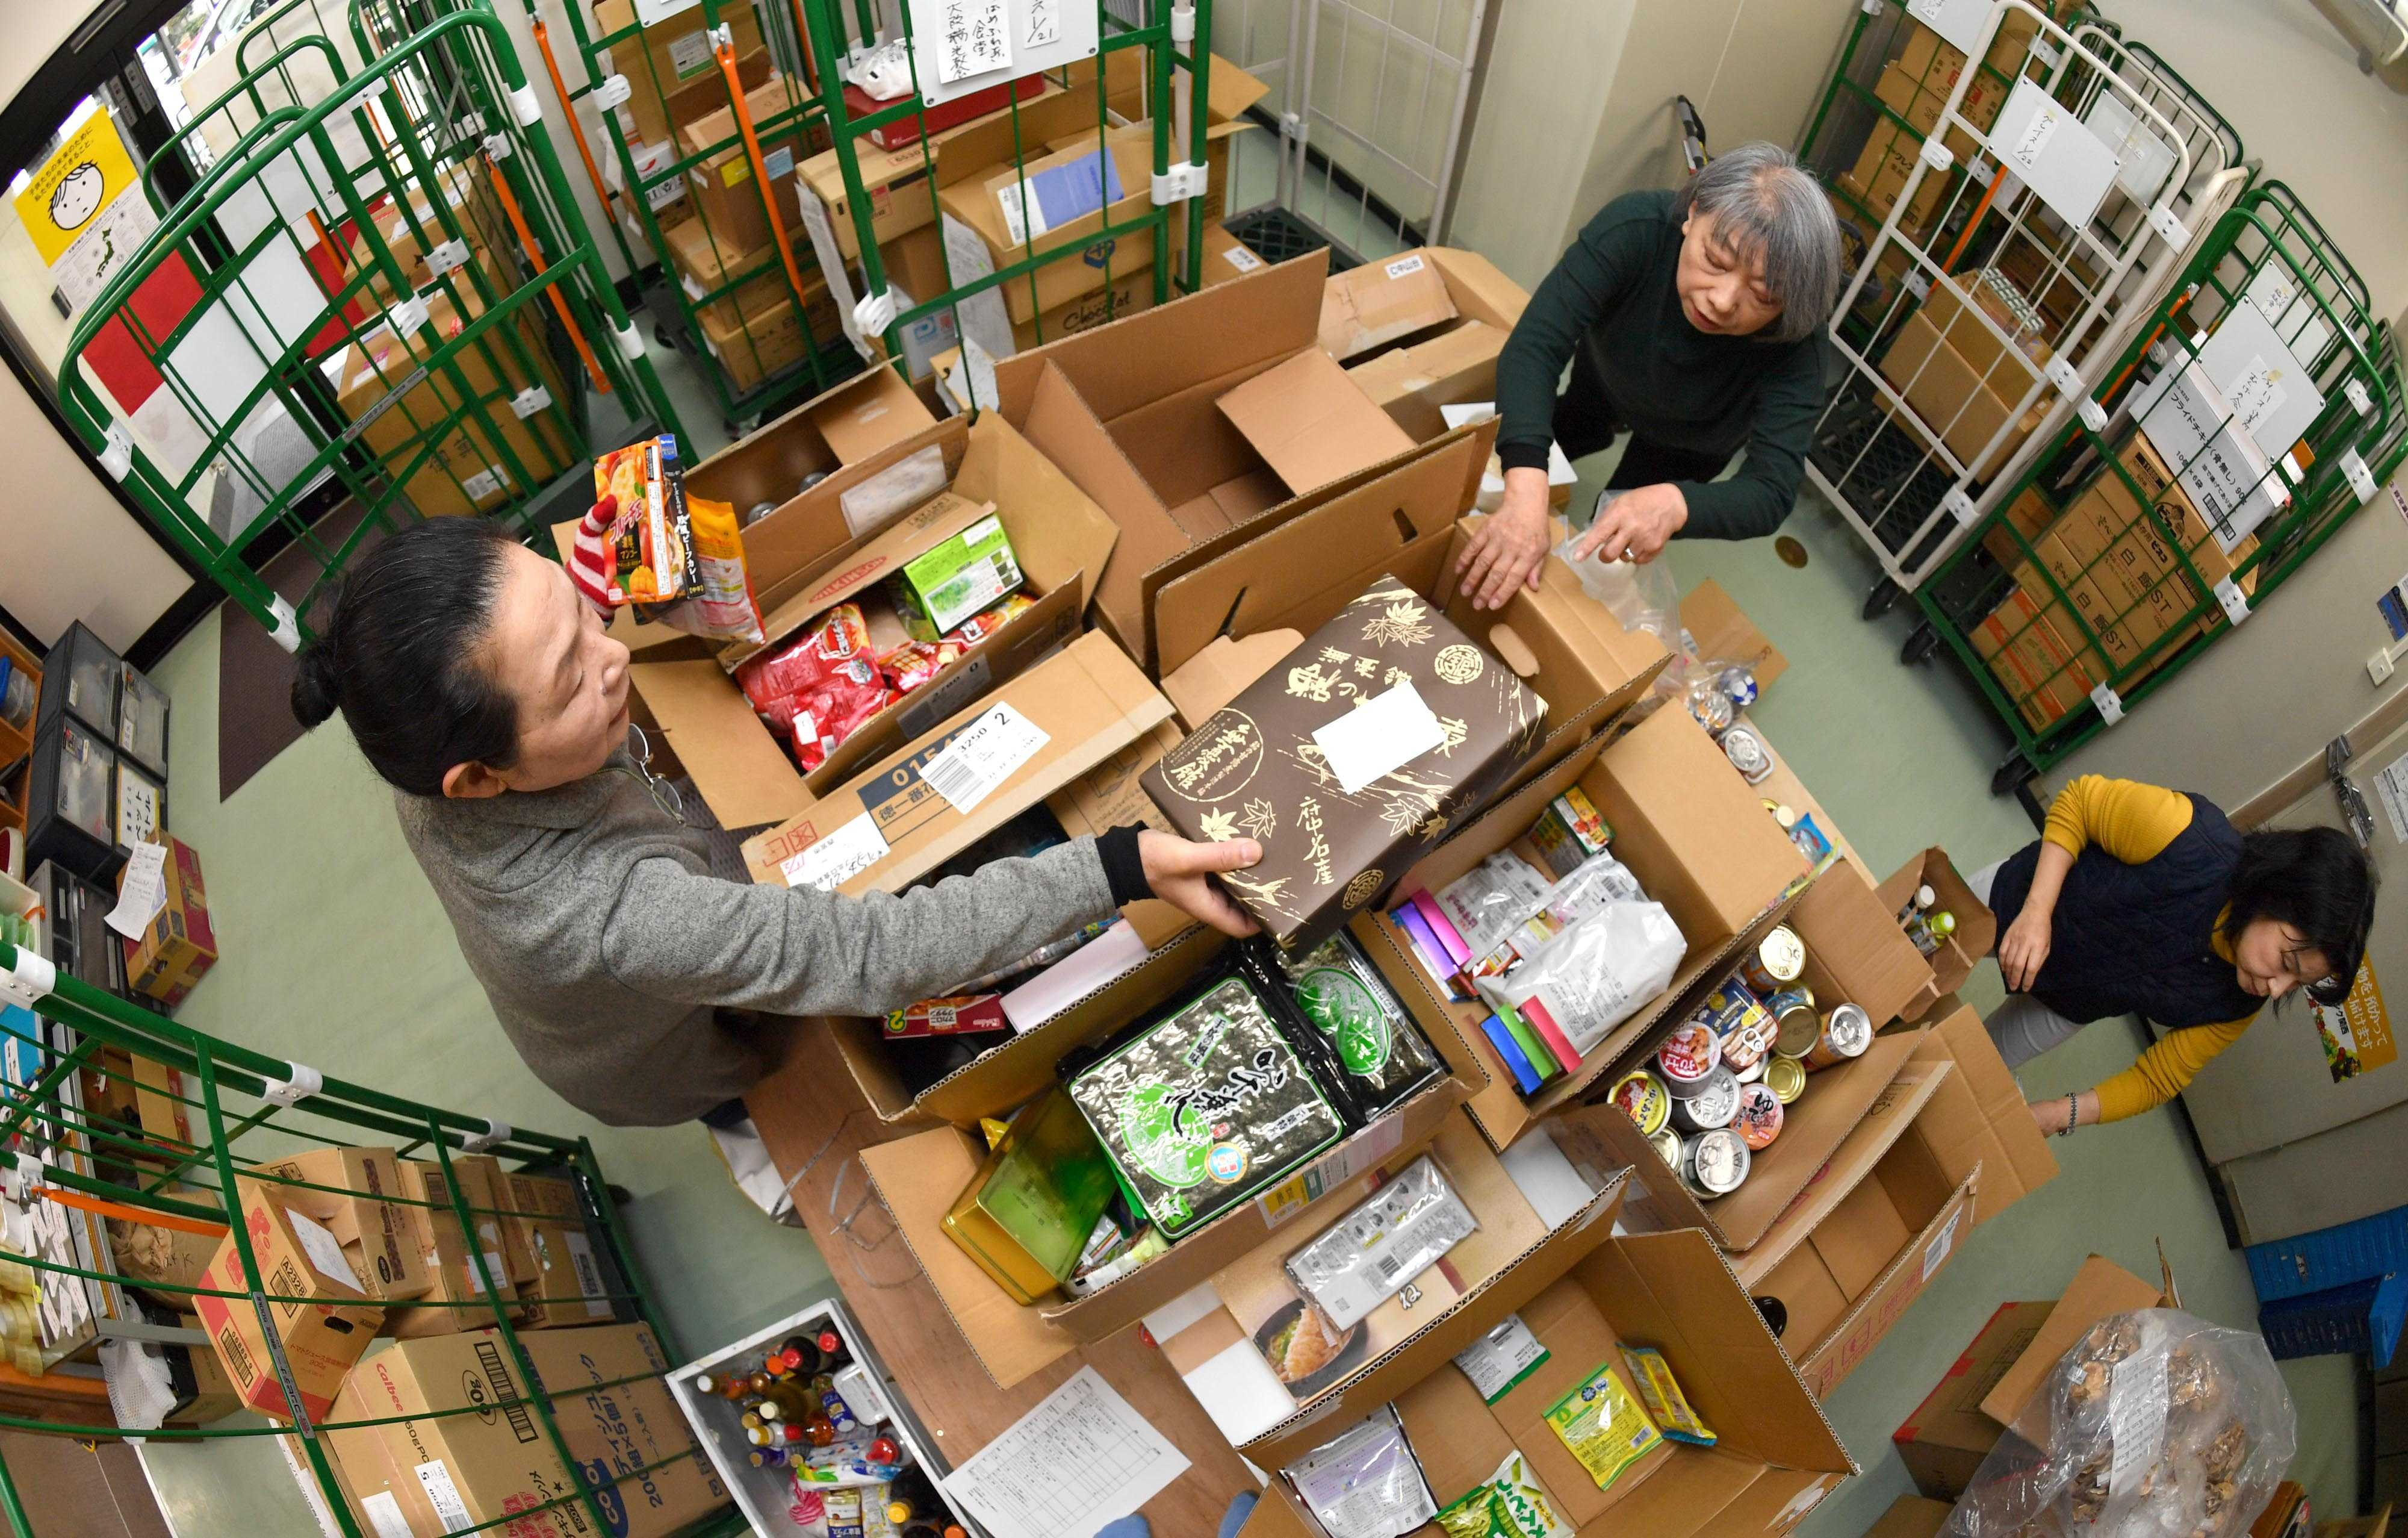 By Feeding the Needy, Ponopono's Place Gives Food Waste A New Mission4